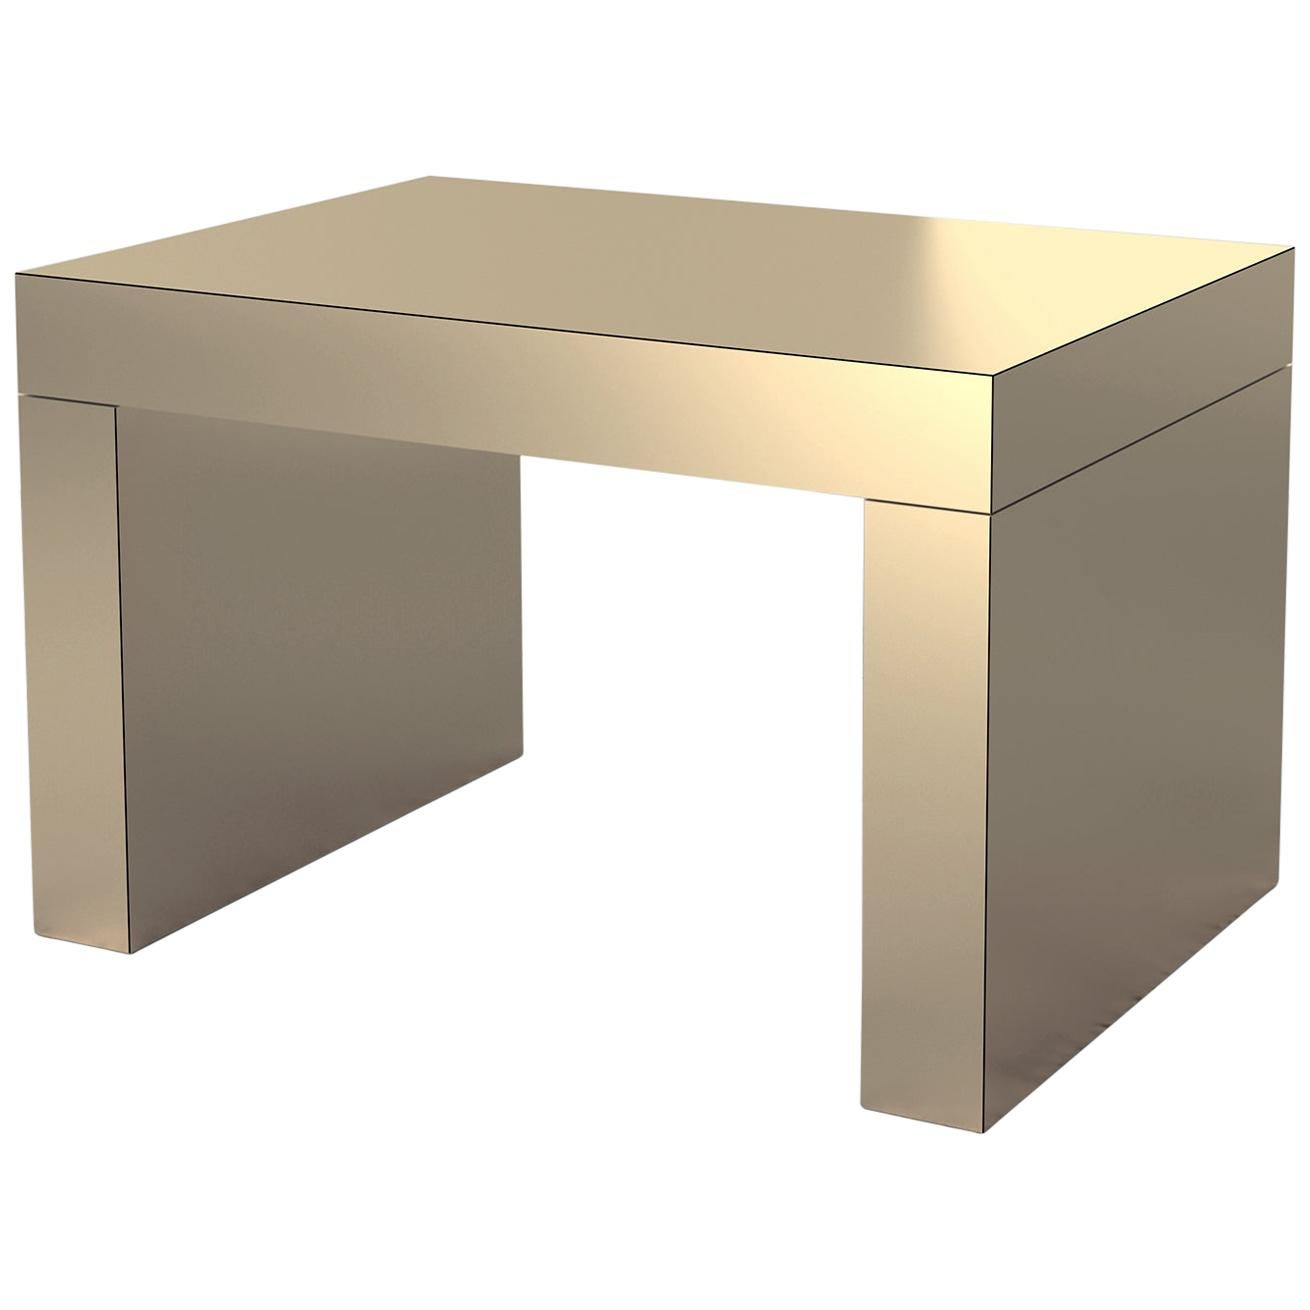 Contemporary Bench/Coffee Table Sand Bronze Gaby Aluminium by Chapel Petrassi